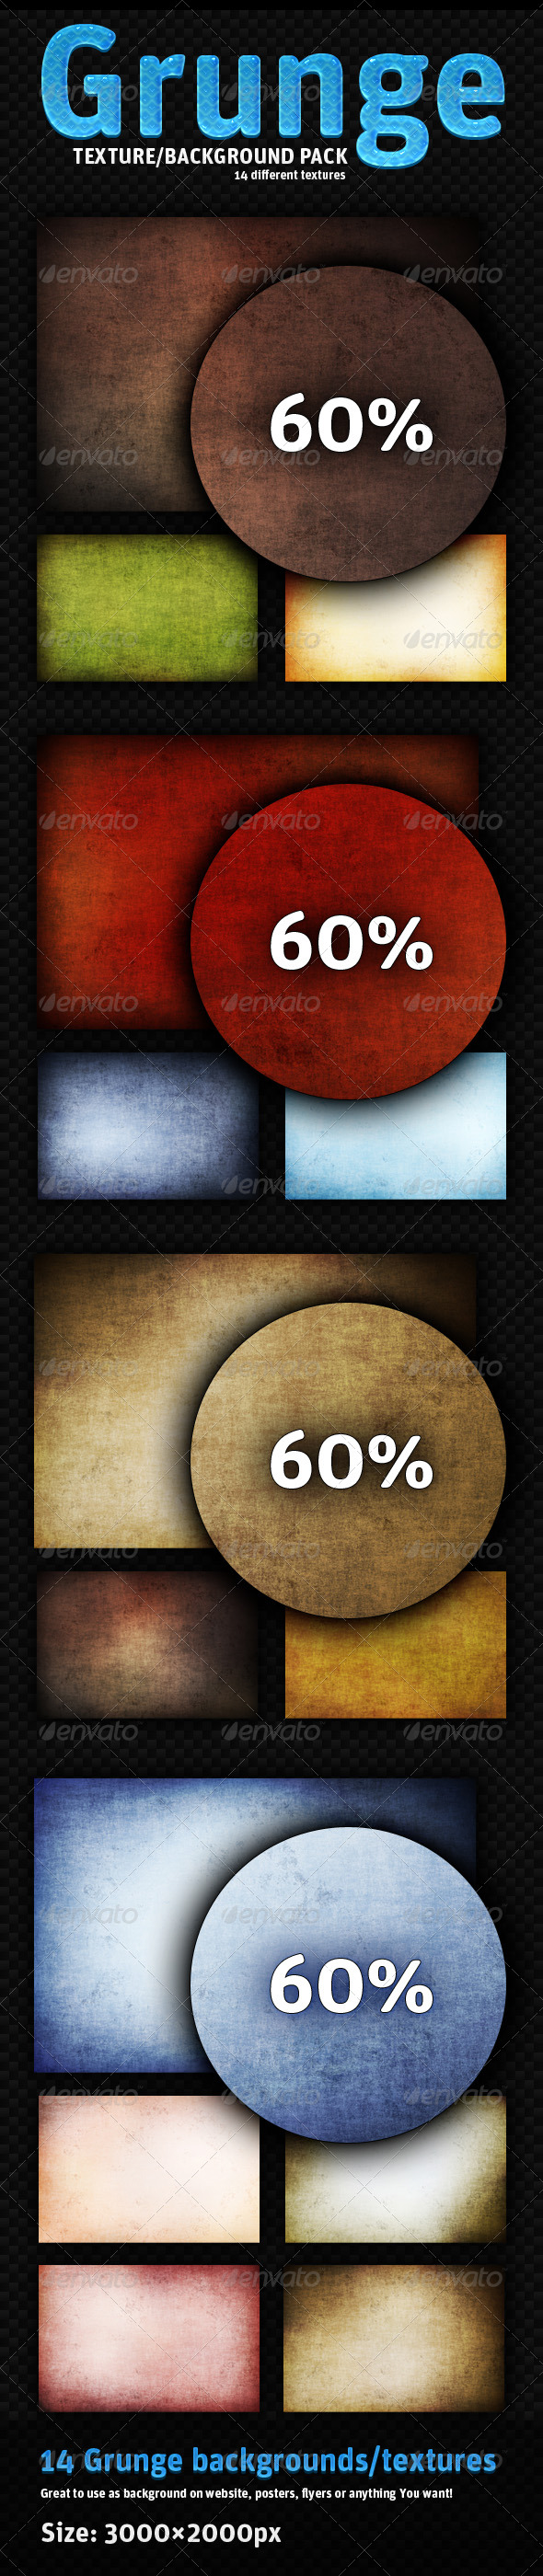 Grunge pack - 14 different backgrounds - Industrial / Grunge Textures